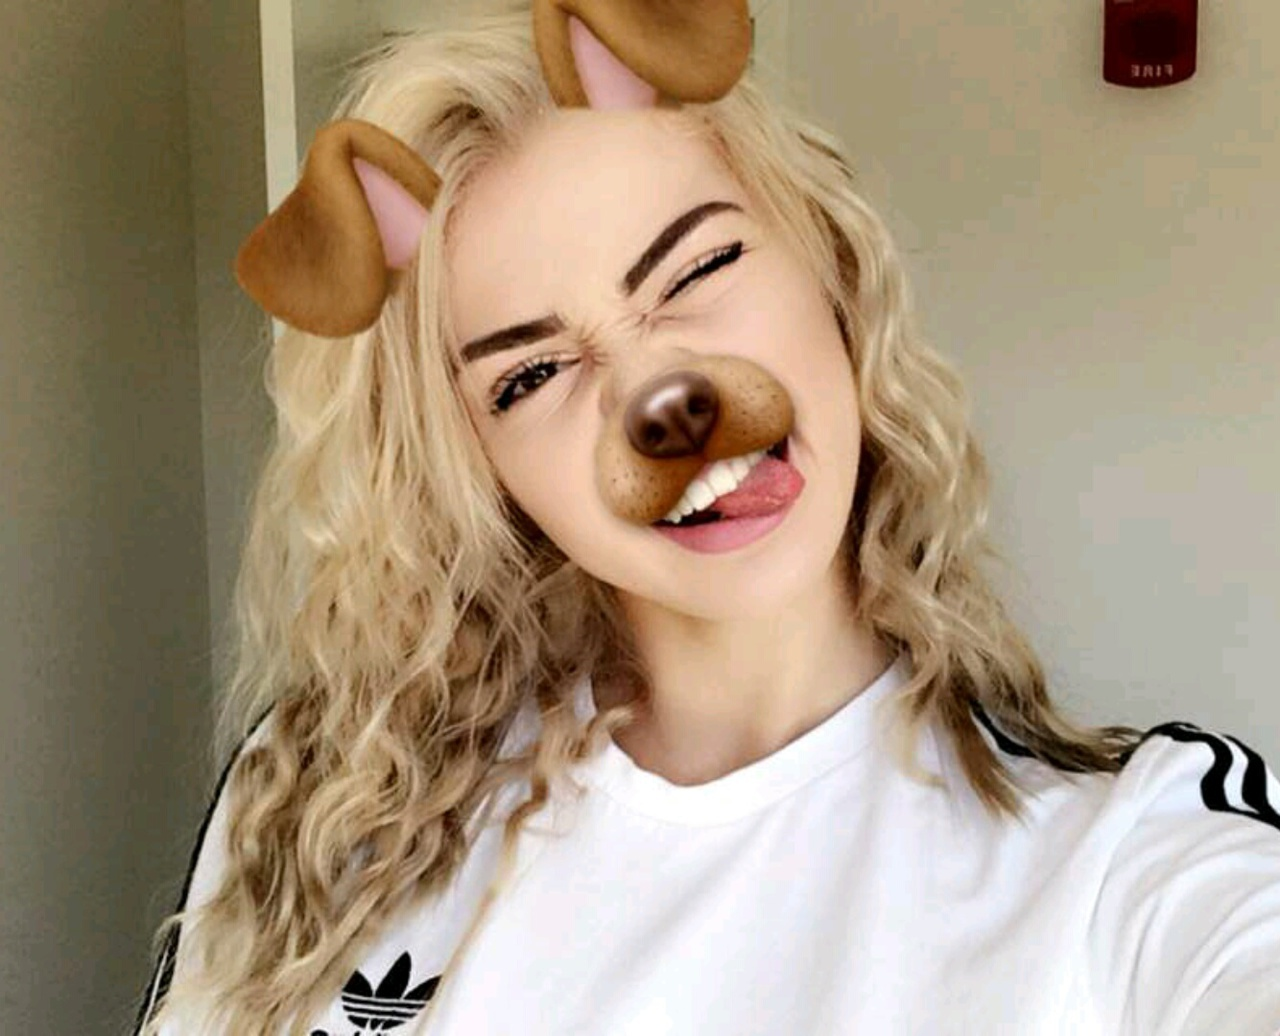 Kristen With Dog Filter On Snapchat Kristen Hancher